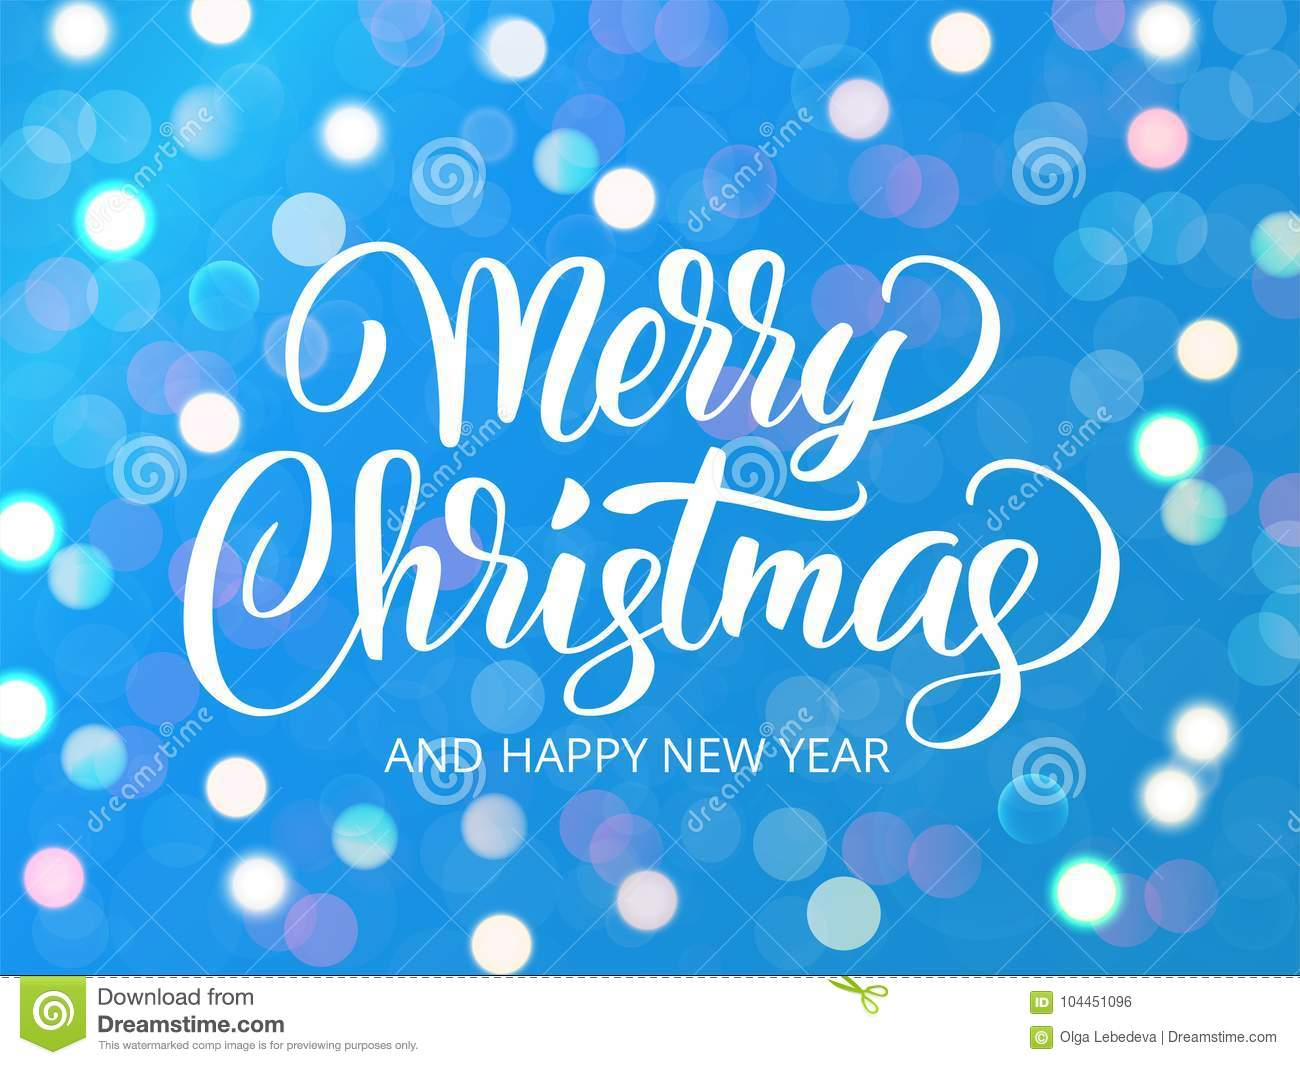 Merry christmas and happy new year text holiday greetings quote download merry christmas and happy new year text holiday greetings quote white and blue m4hsunfo